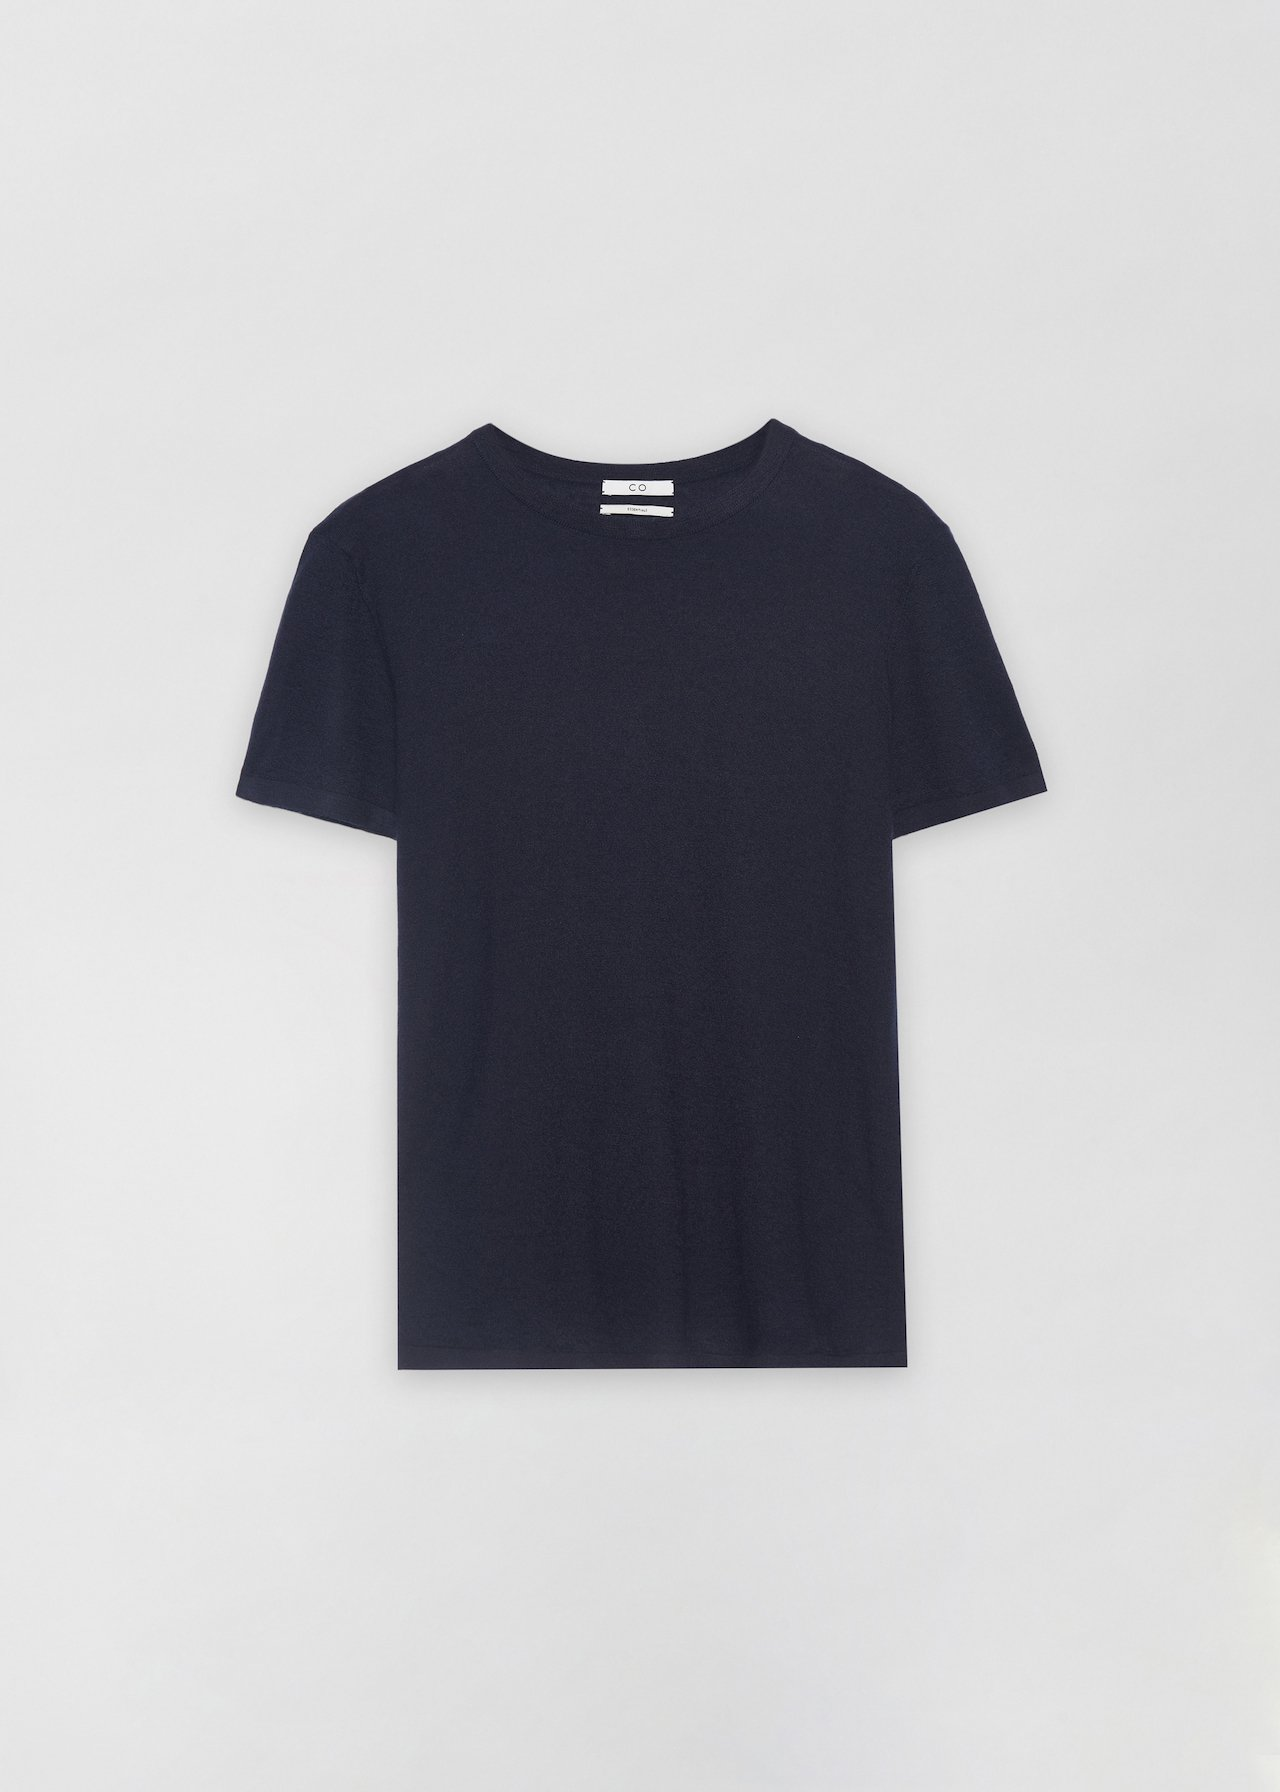 Cashmere T-Shirt - Grey in Navy by Co Collections